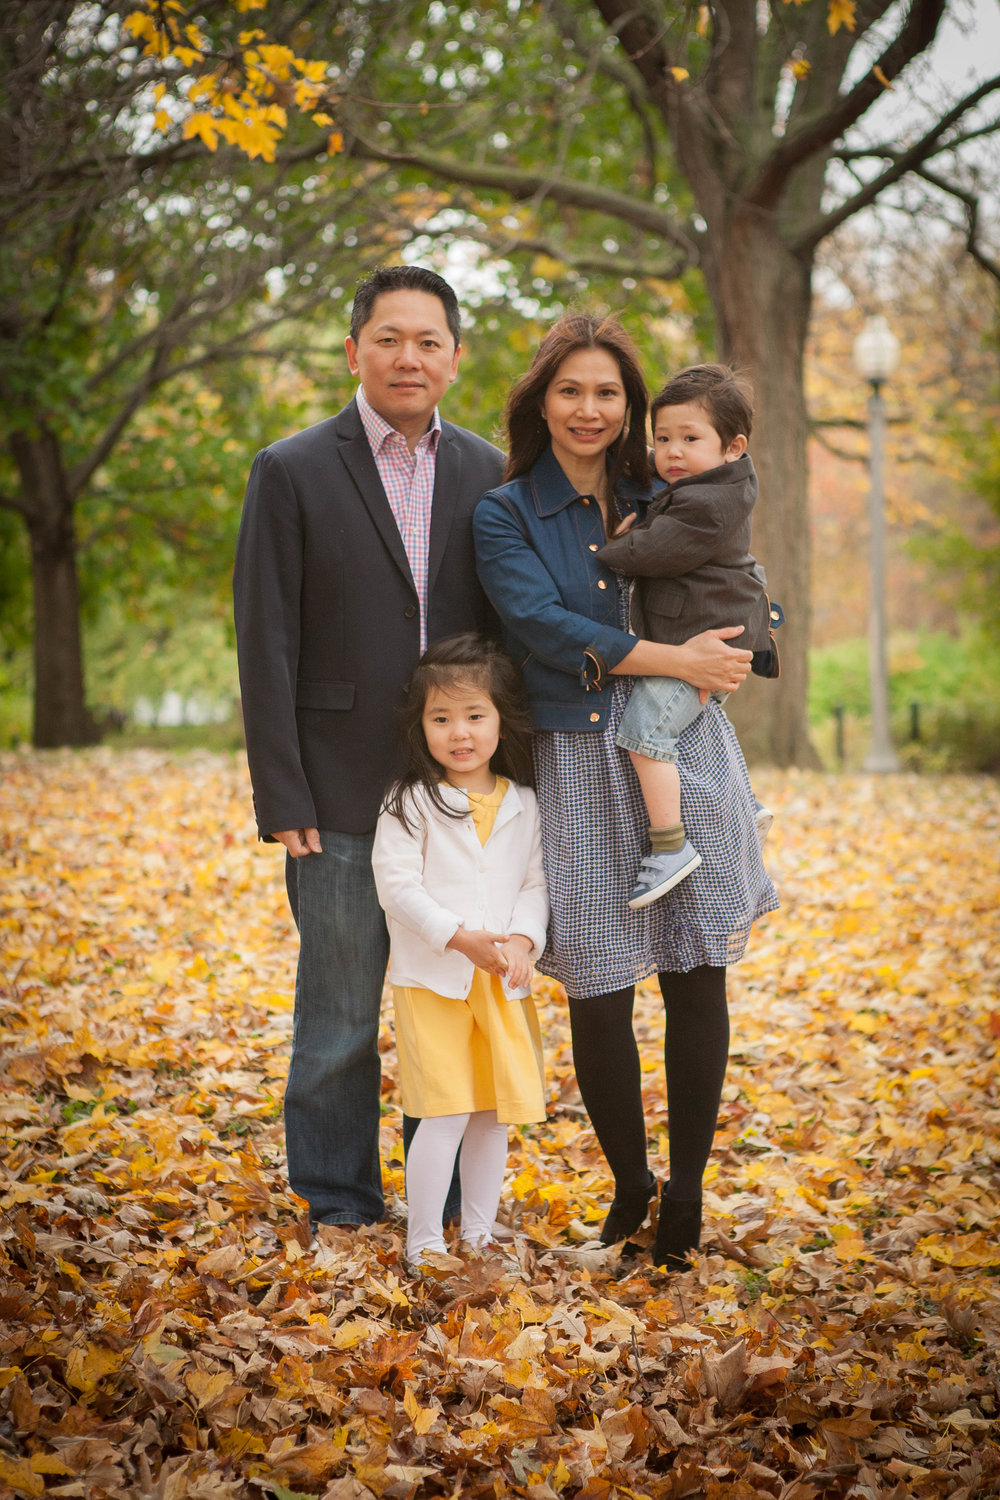 FAMILY PHOTOGRAPHER IN GOMPERS PARK CHICAGO